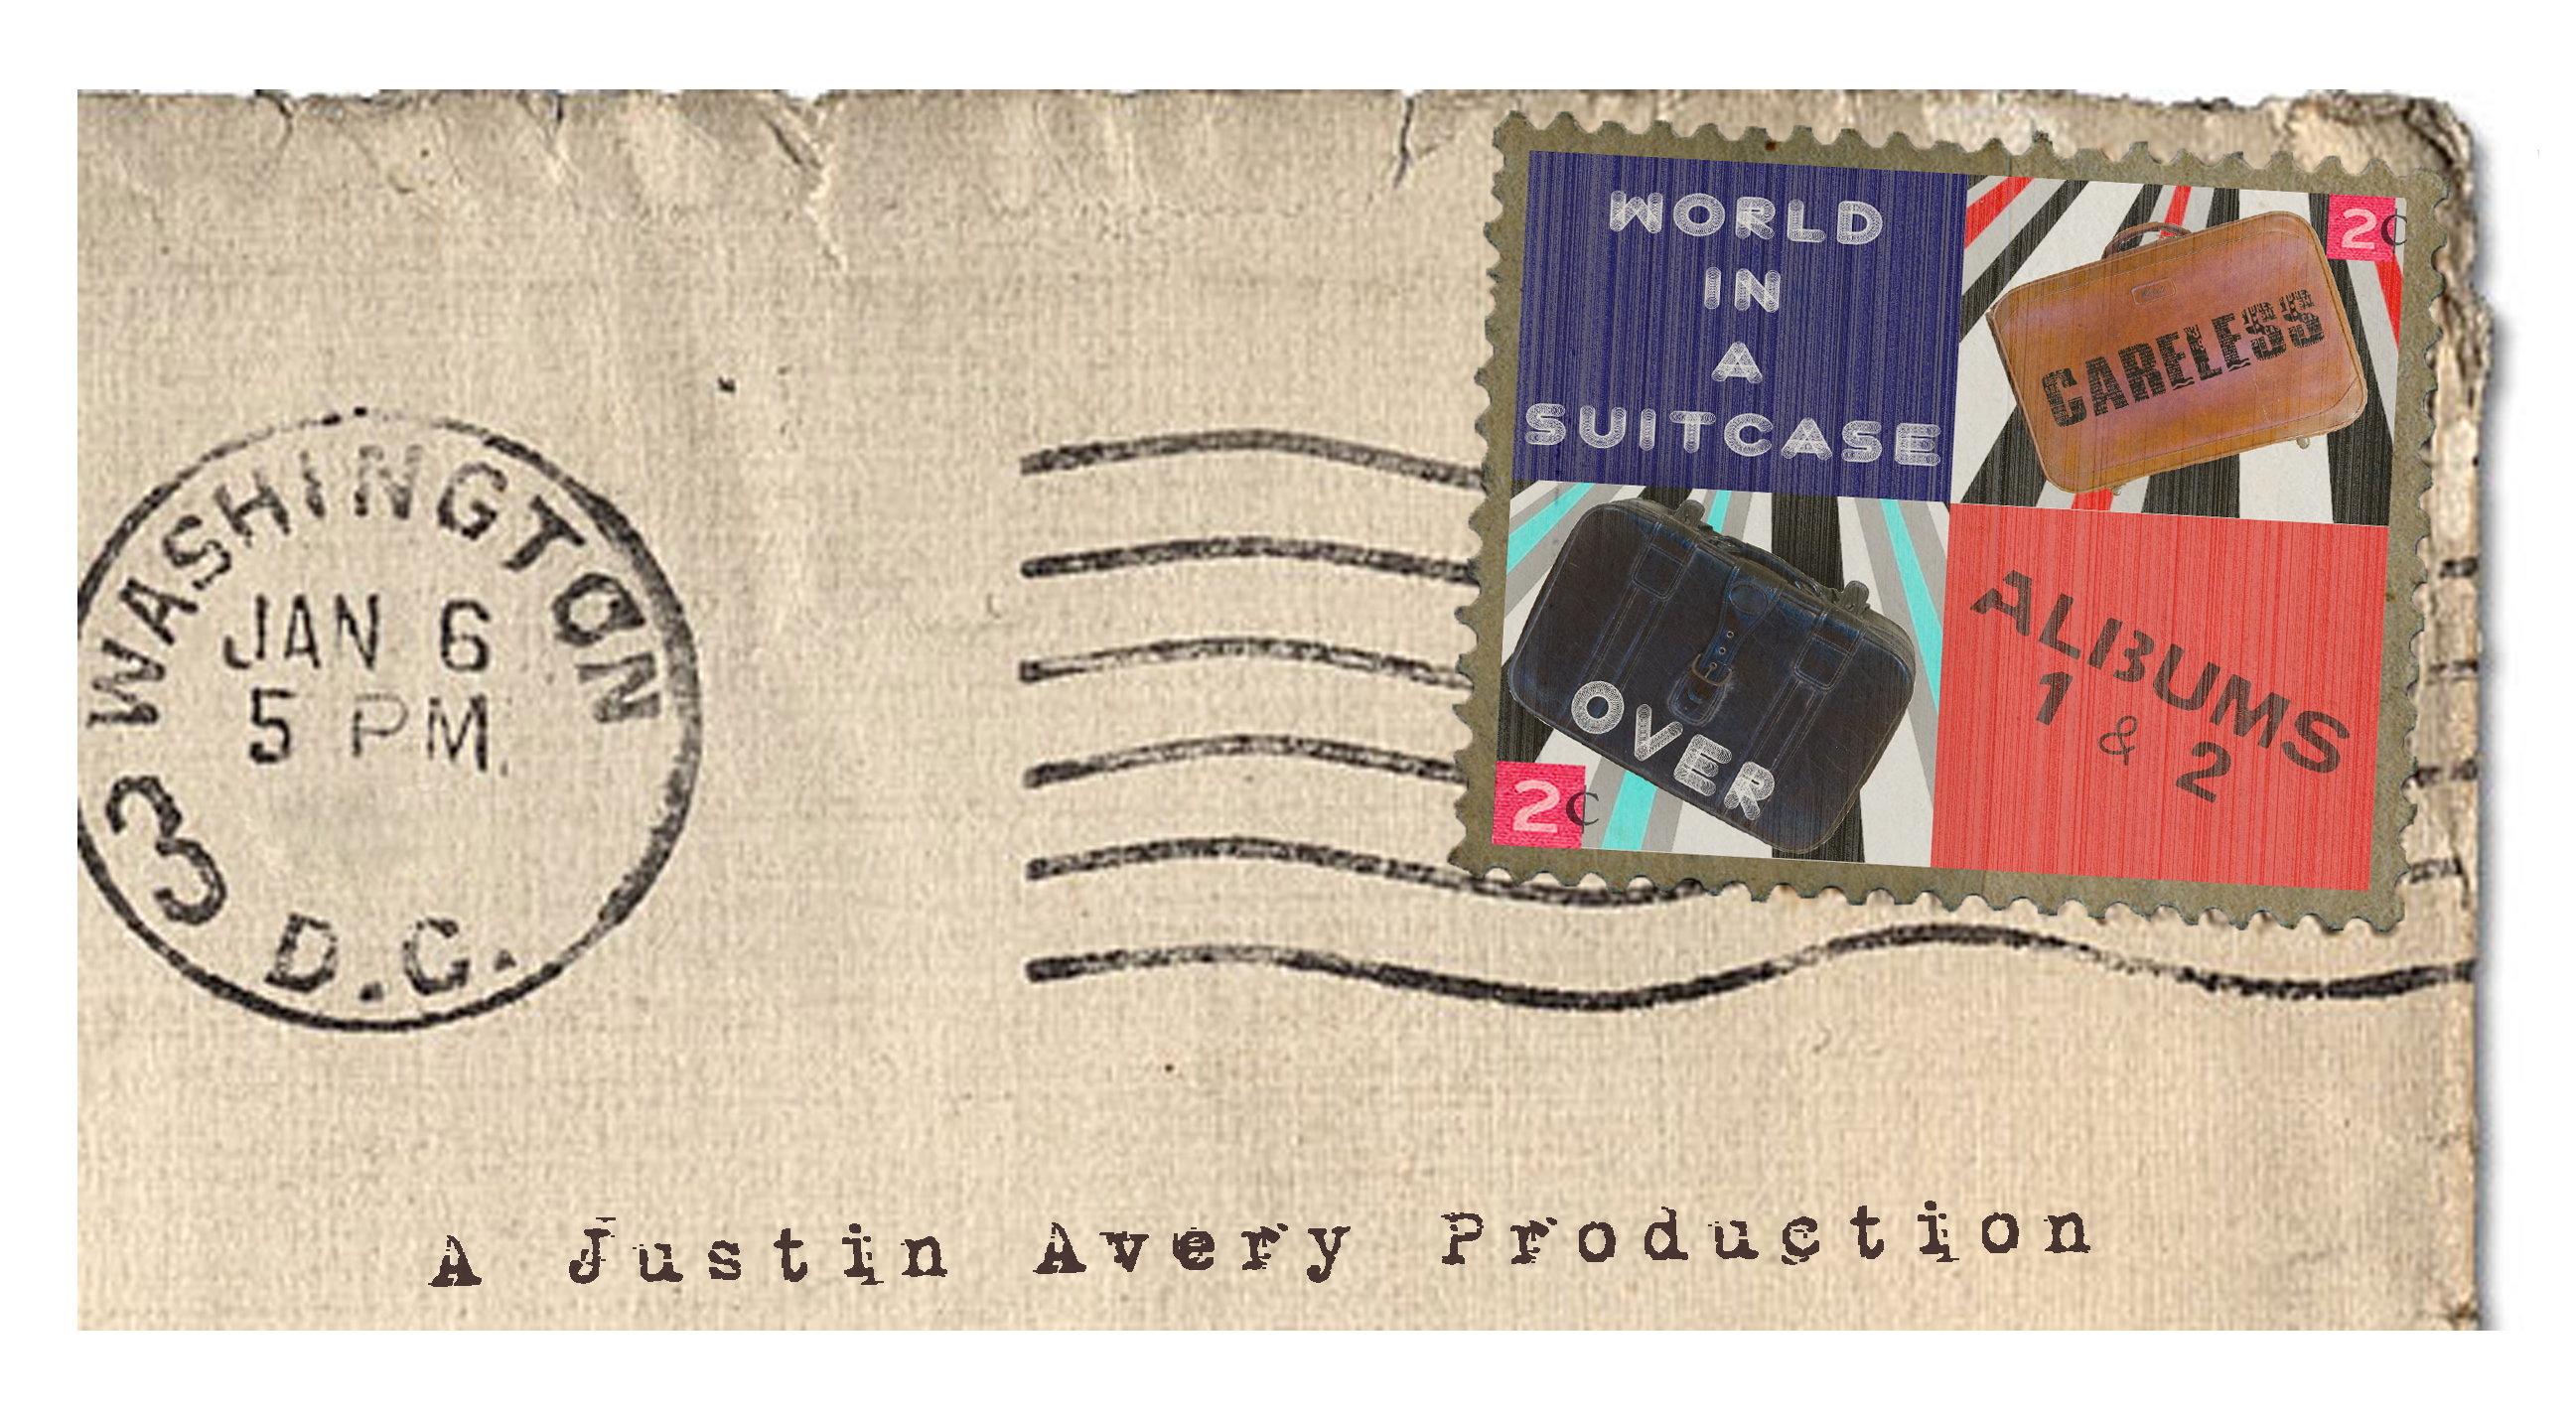 World In A Suitcase Letter